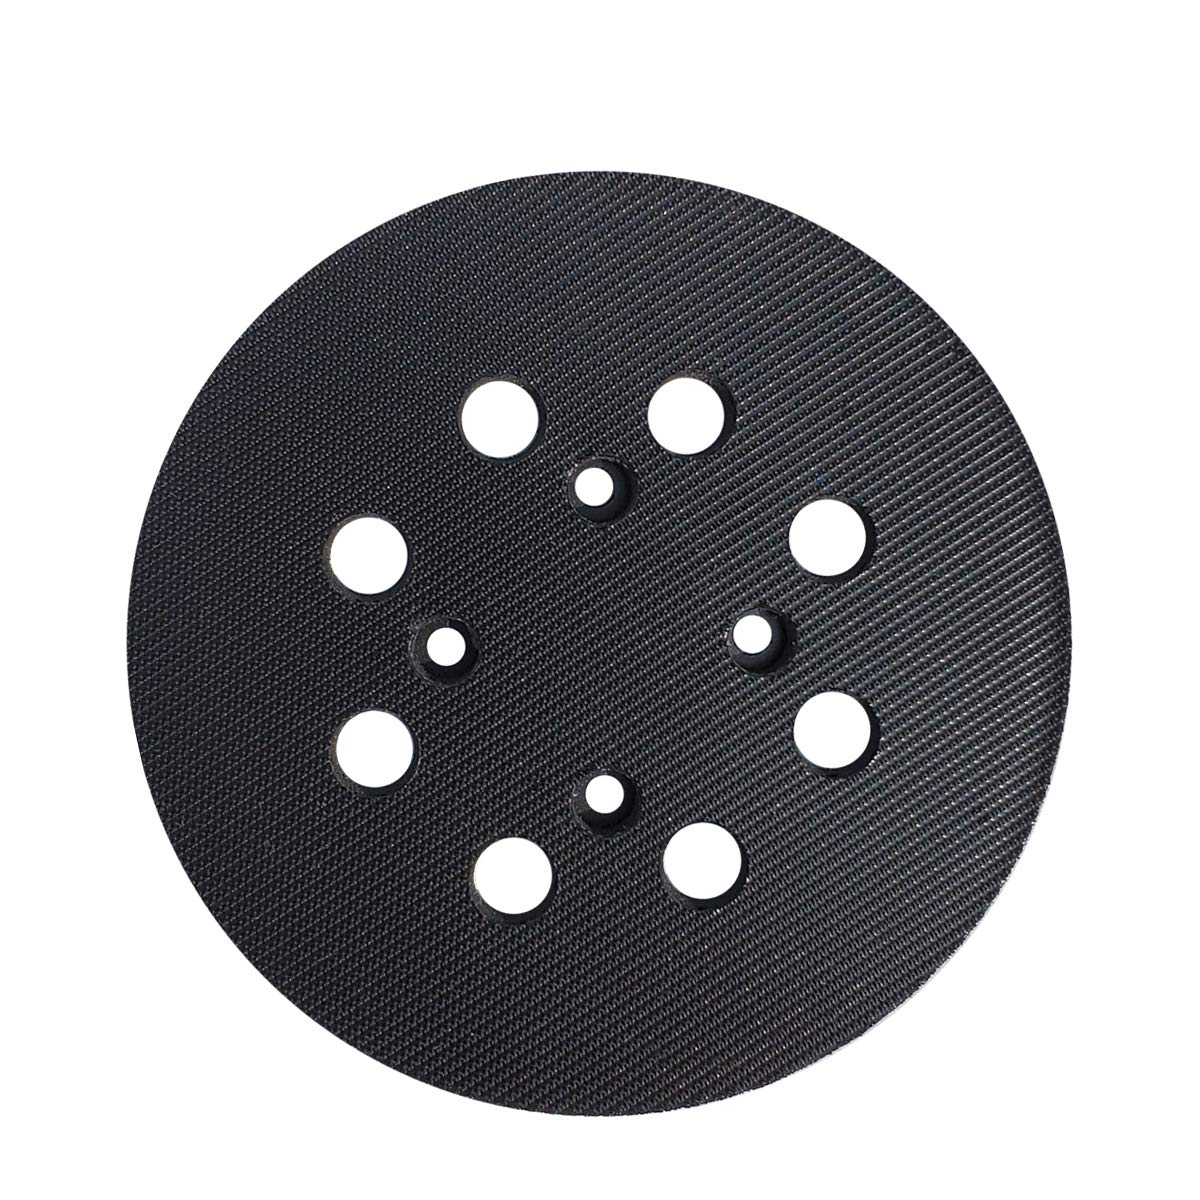 5 Hook and Loop Sander Pad for Milwaukee 6021-21, 6034-21 Random Orbit Sanders - Replacement for Pad Part Number 51-36-7100 - with Extra Hard Backing